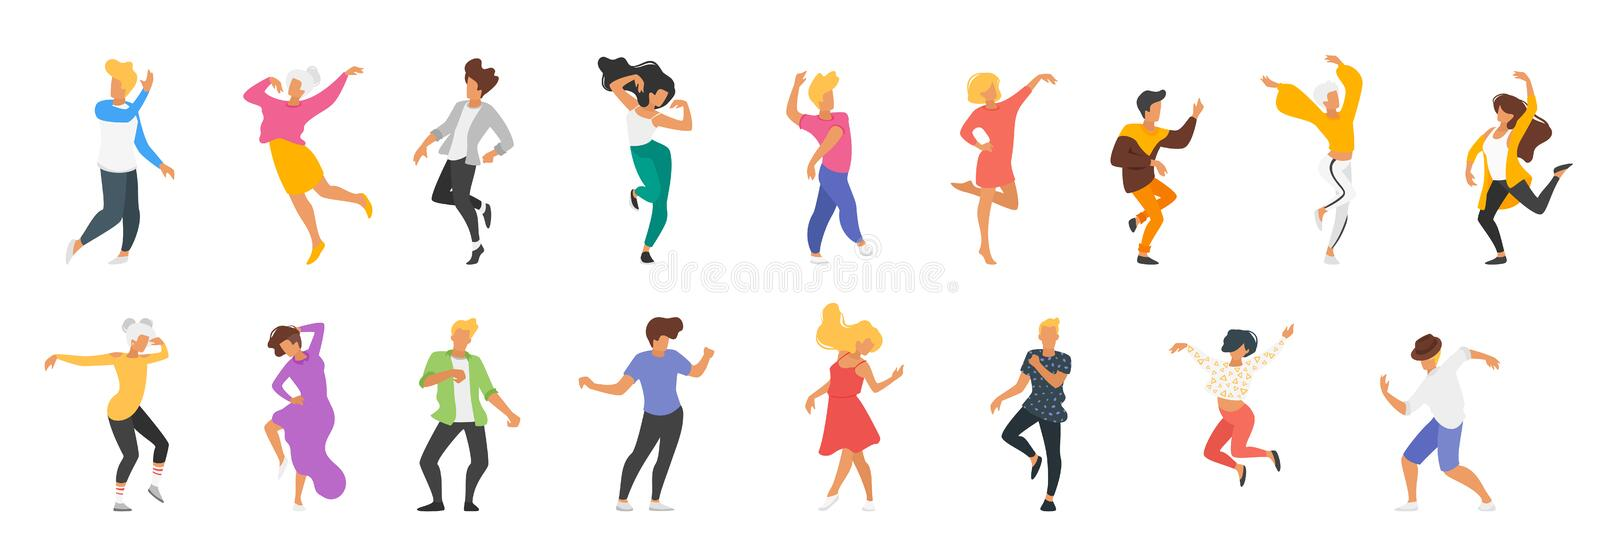 Dancing people silhouette royalty free illustration